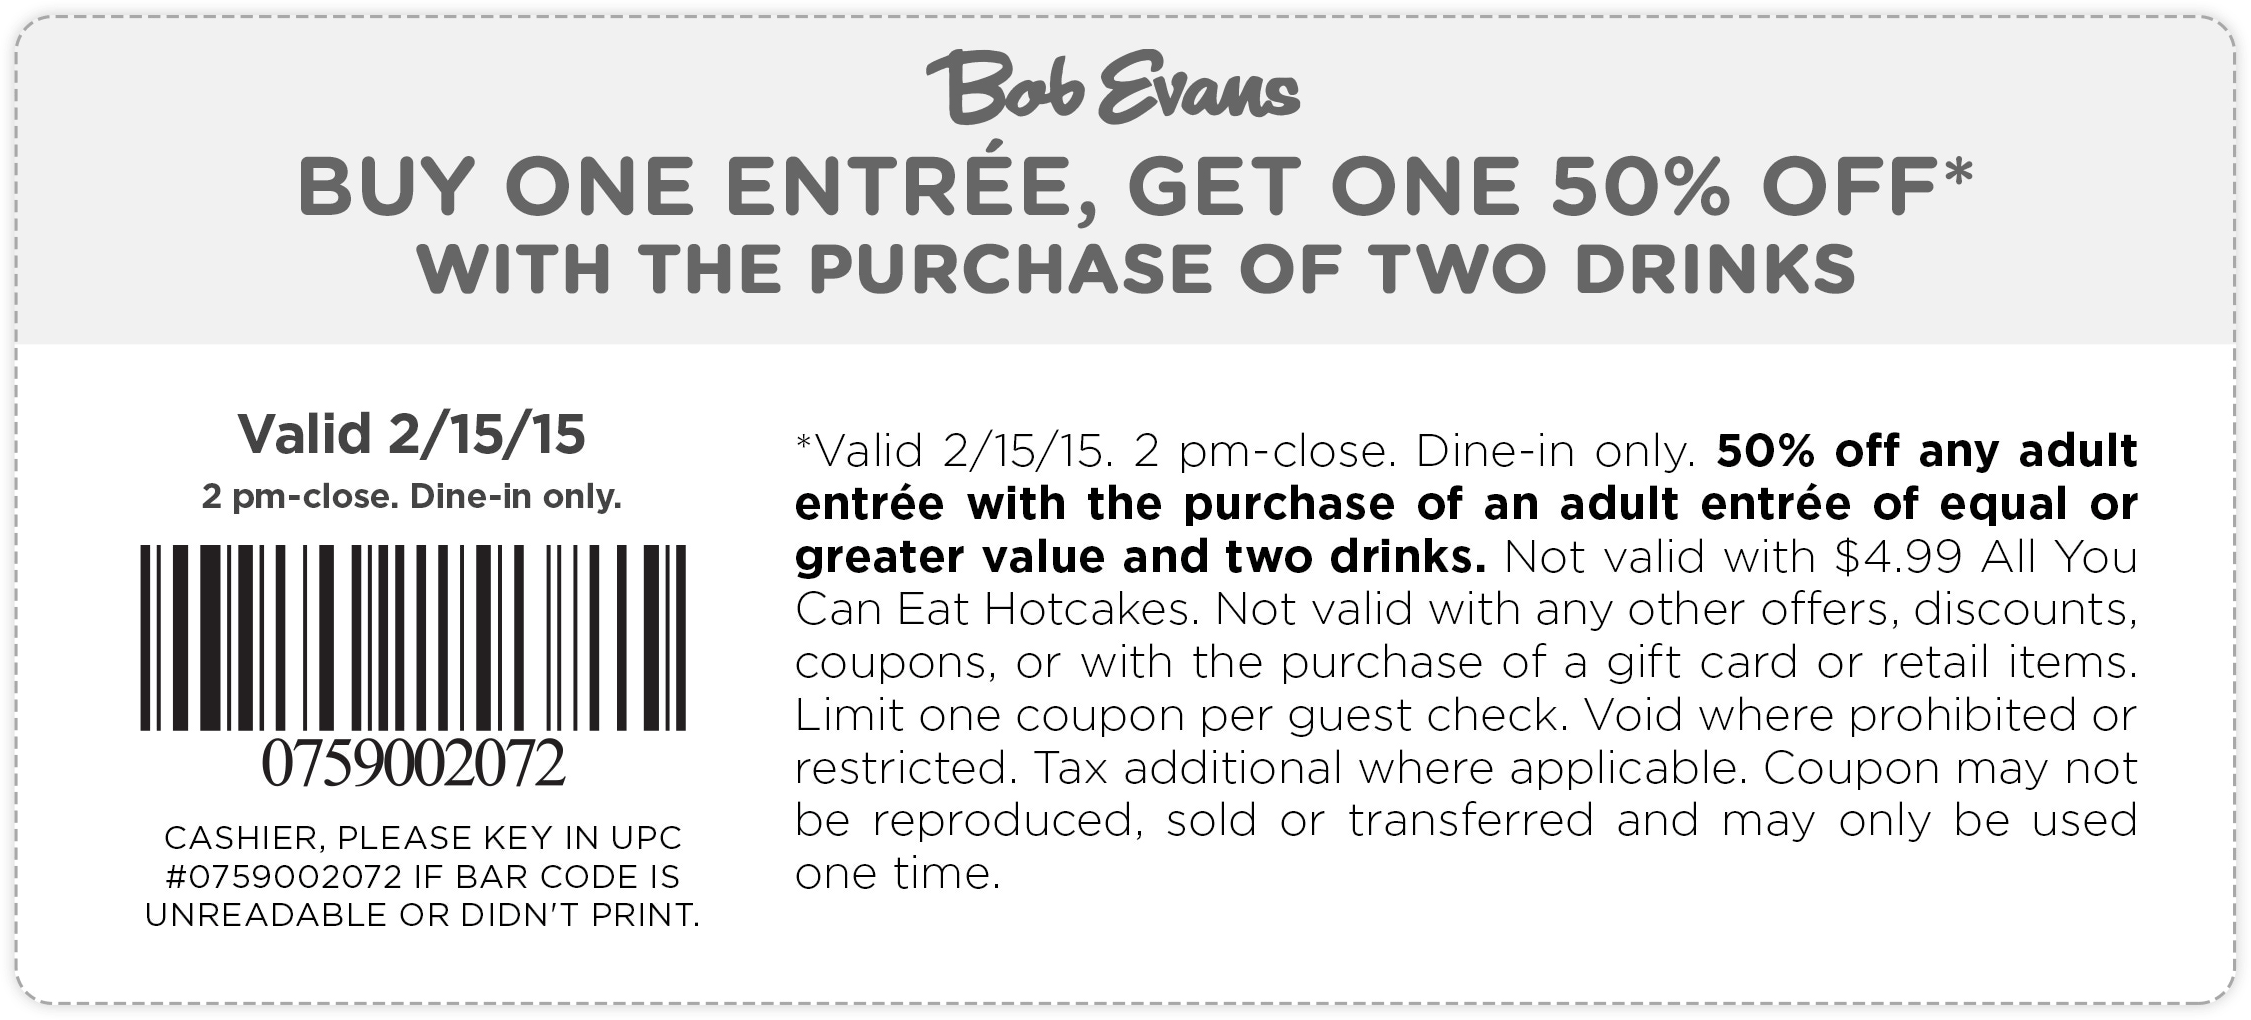 Bob Evans Coupon August 2017 Second entree 50% off today at Bob Evans